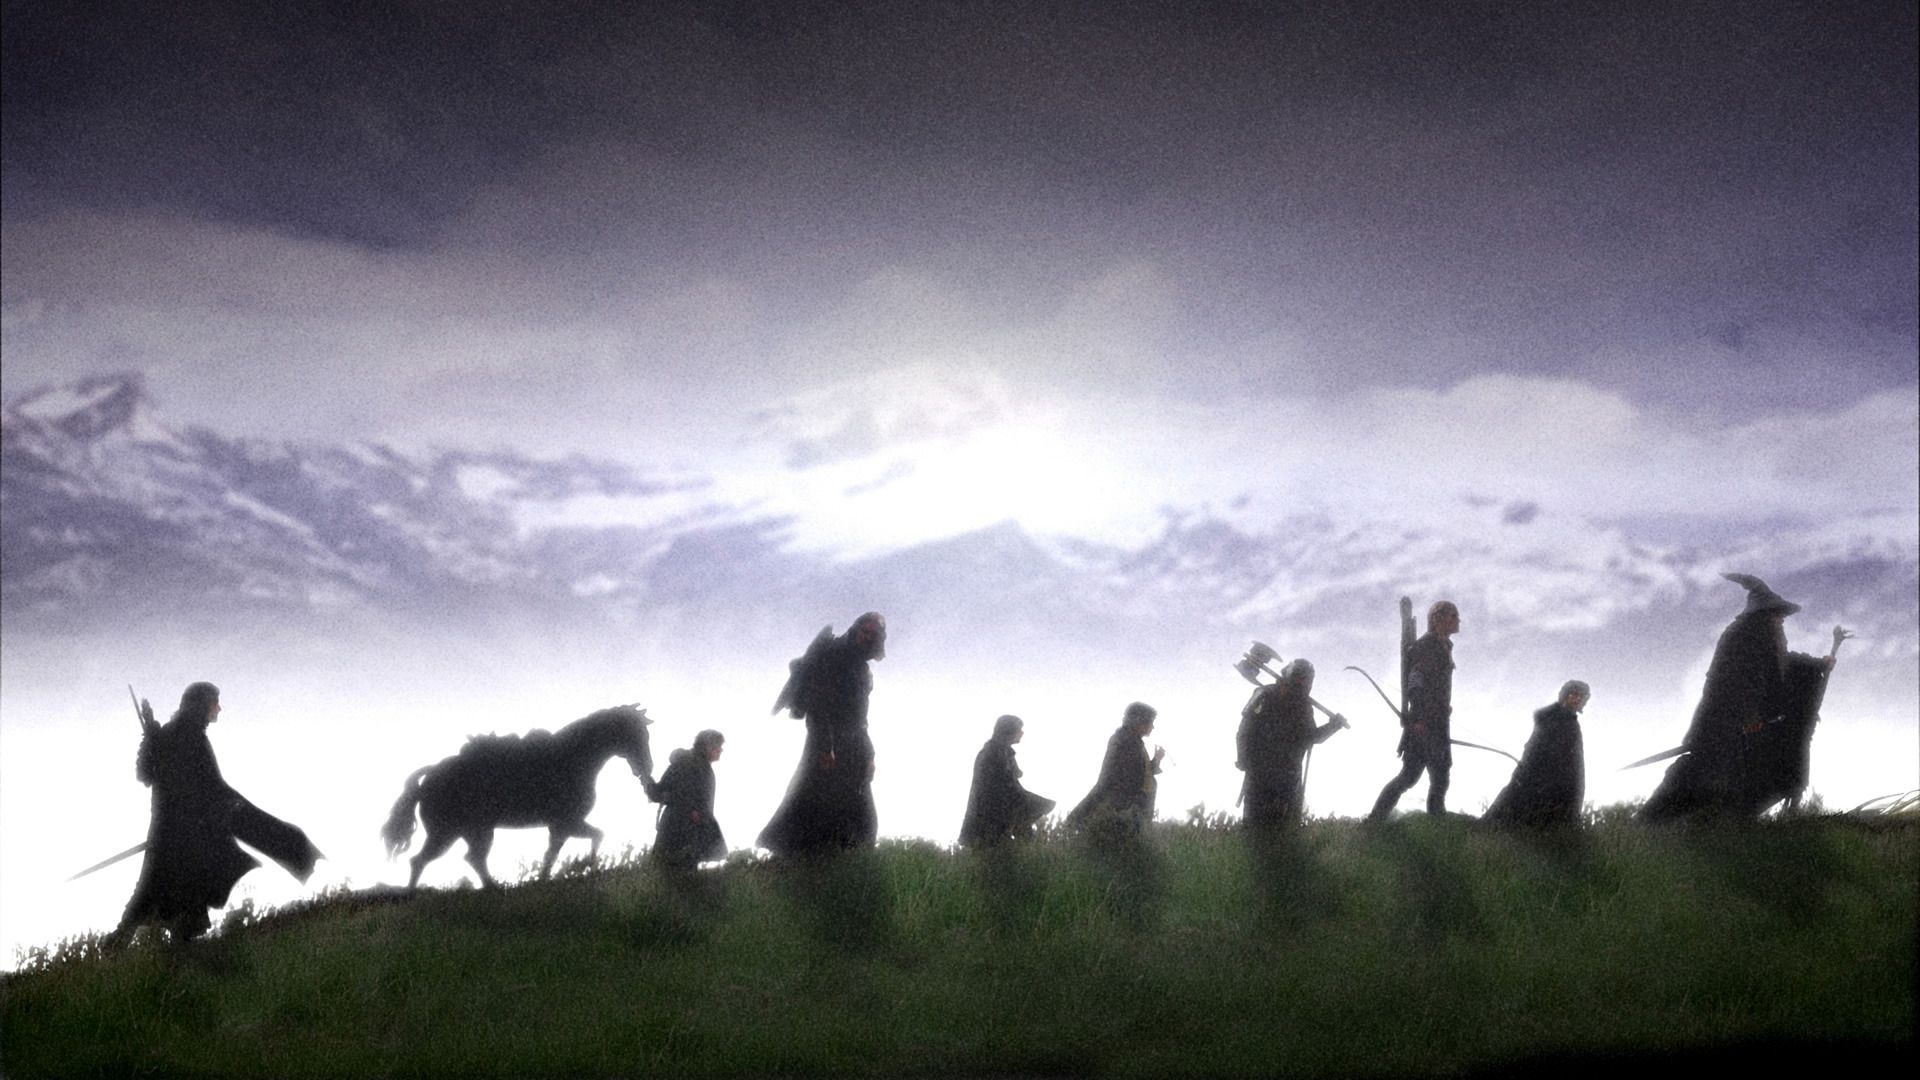 The Order That They Are In Is Best Thing Ever Gandalf First Then Frodo Because If Attacked Hes Closest To Lego And Gimli